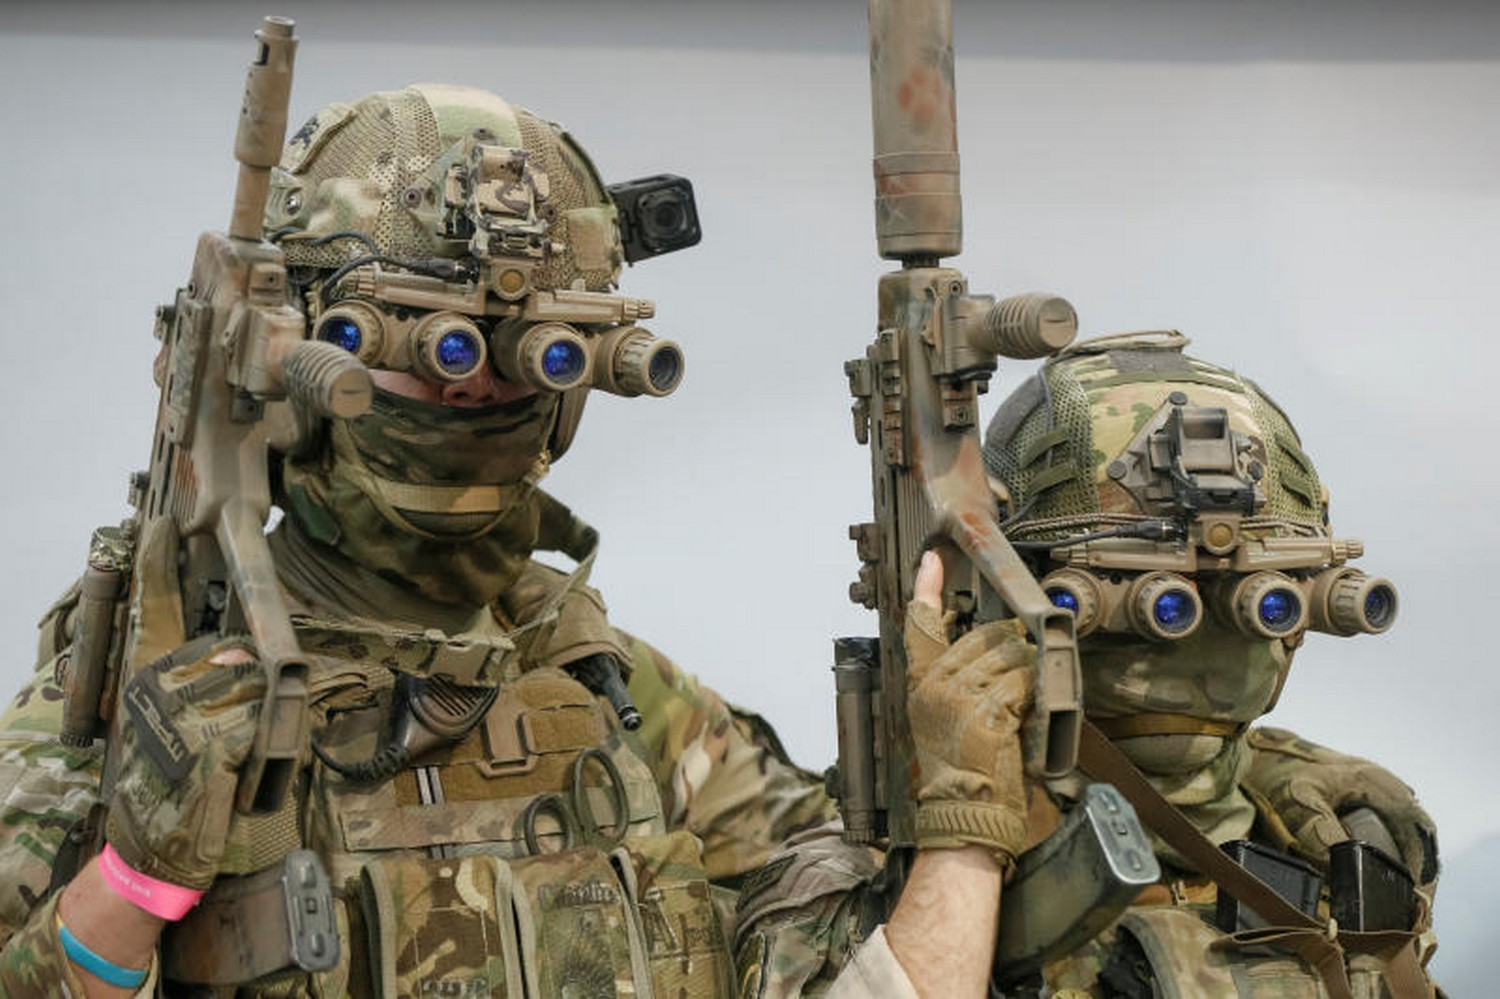 Servicemen of the Ukrainian special operation forces pose for a picture ahead of a cyber games tournament, part of a consumer electronics exhibition in Kiev, Ukraine, on Sept 28, 2019. (Photo: Reuters)